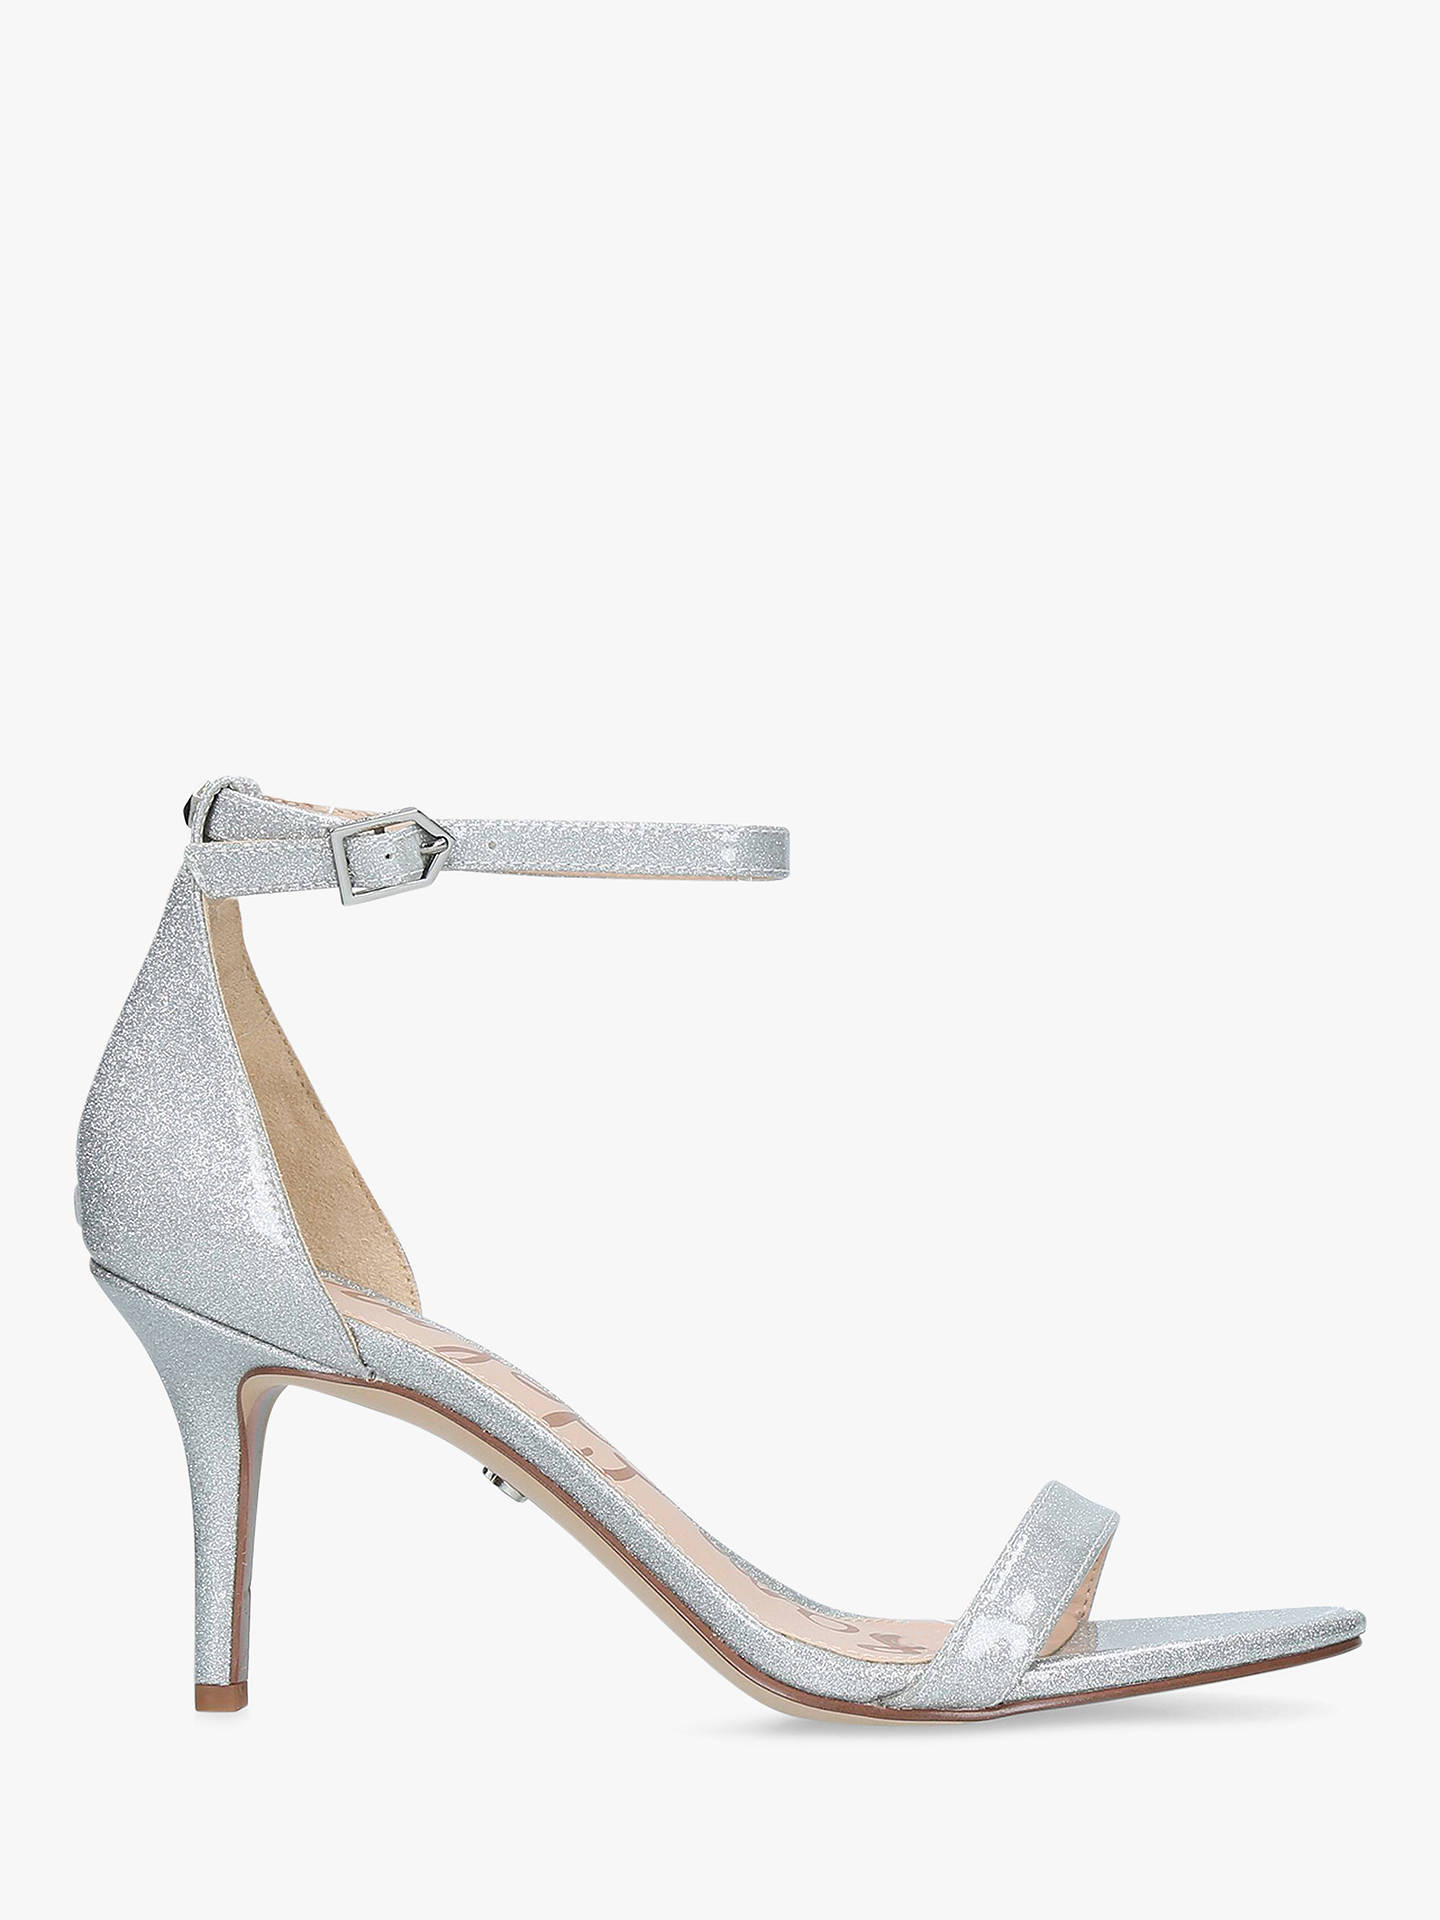 b9ccec734bb Buy Sam Edelman Patti Ankle Strap Heeled Sandals